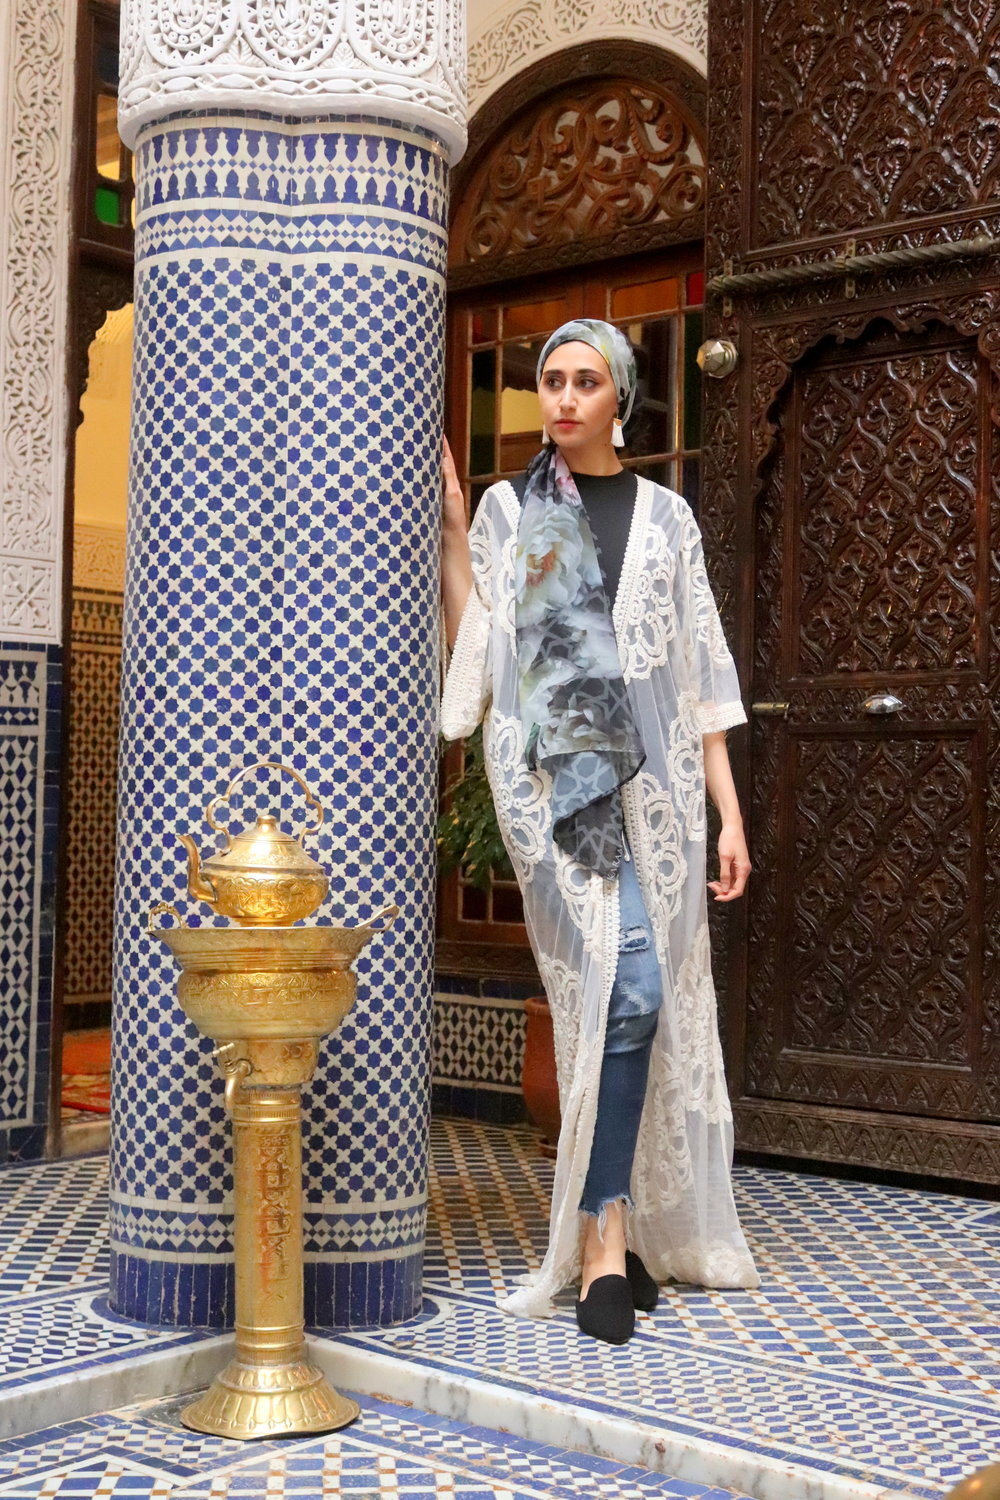 fez-morocco what to wear in morocco , morocco outfits karama by hoda arabesque scarf, moroccan scarf, arabesque lifestyle, boho chic boho outfit, geometric scarf mosaic scarf moroccan decor morocco decor nyc